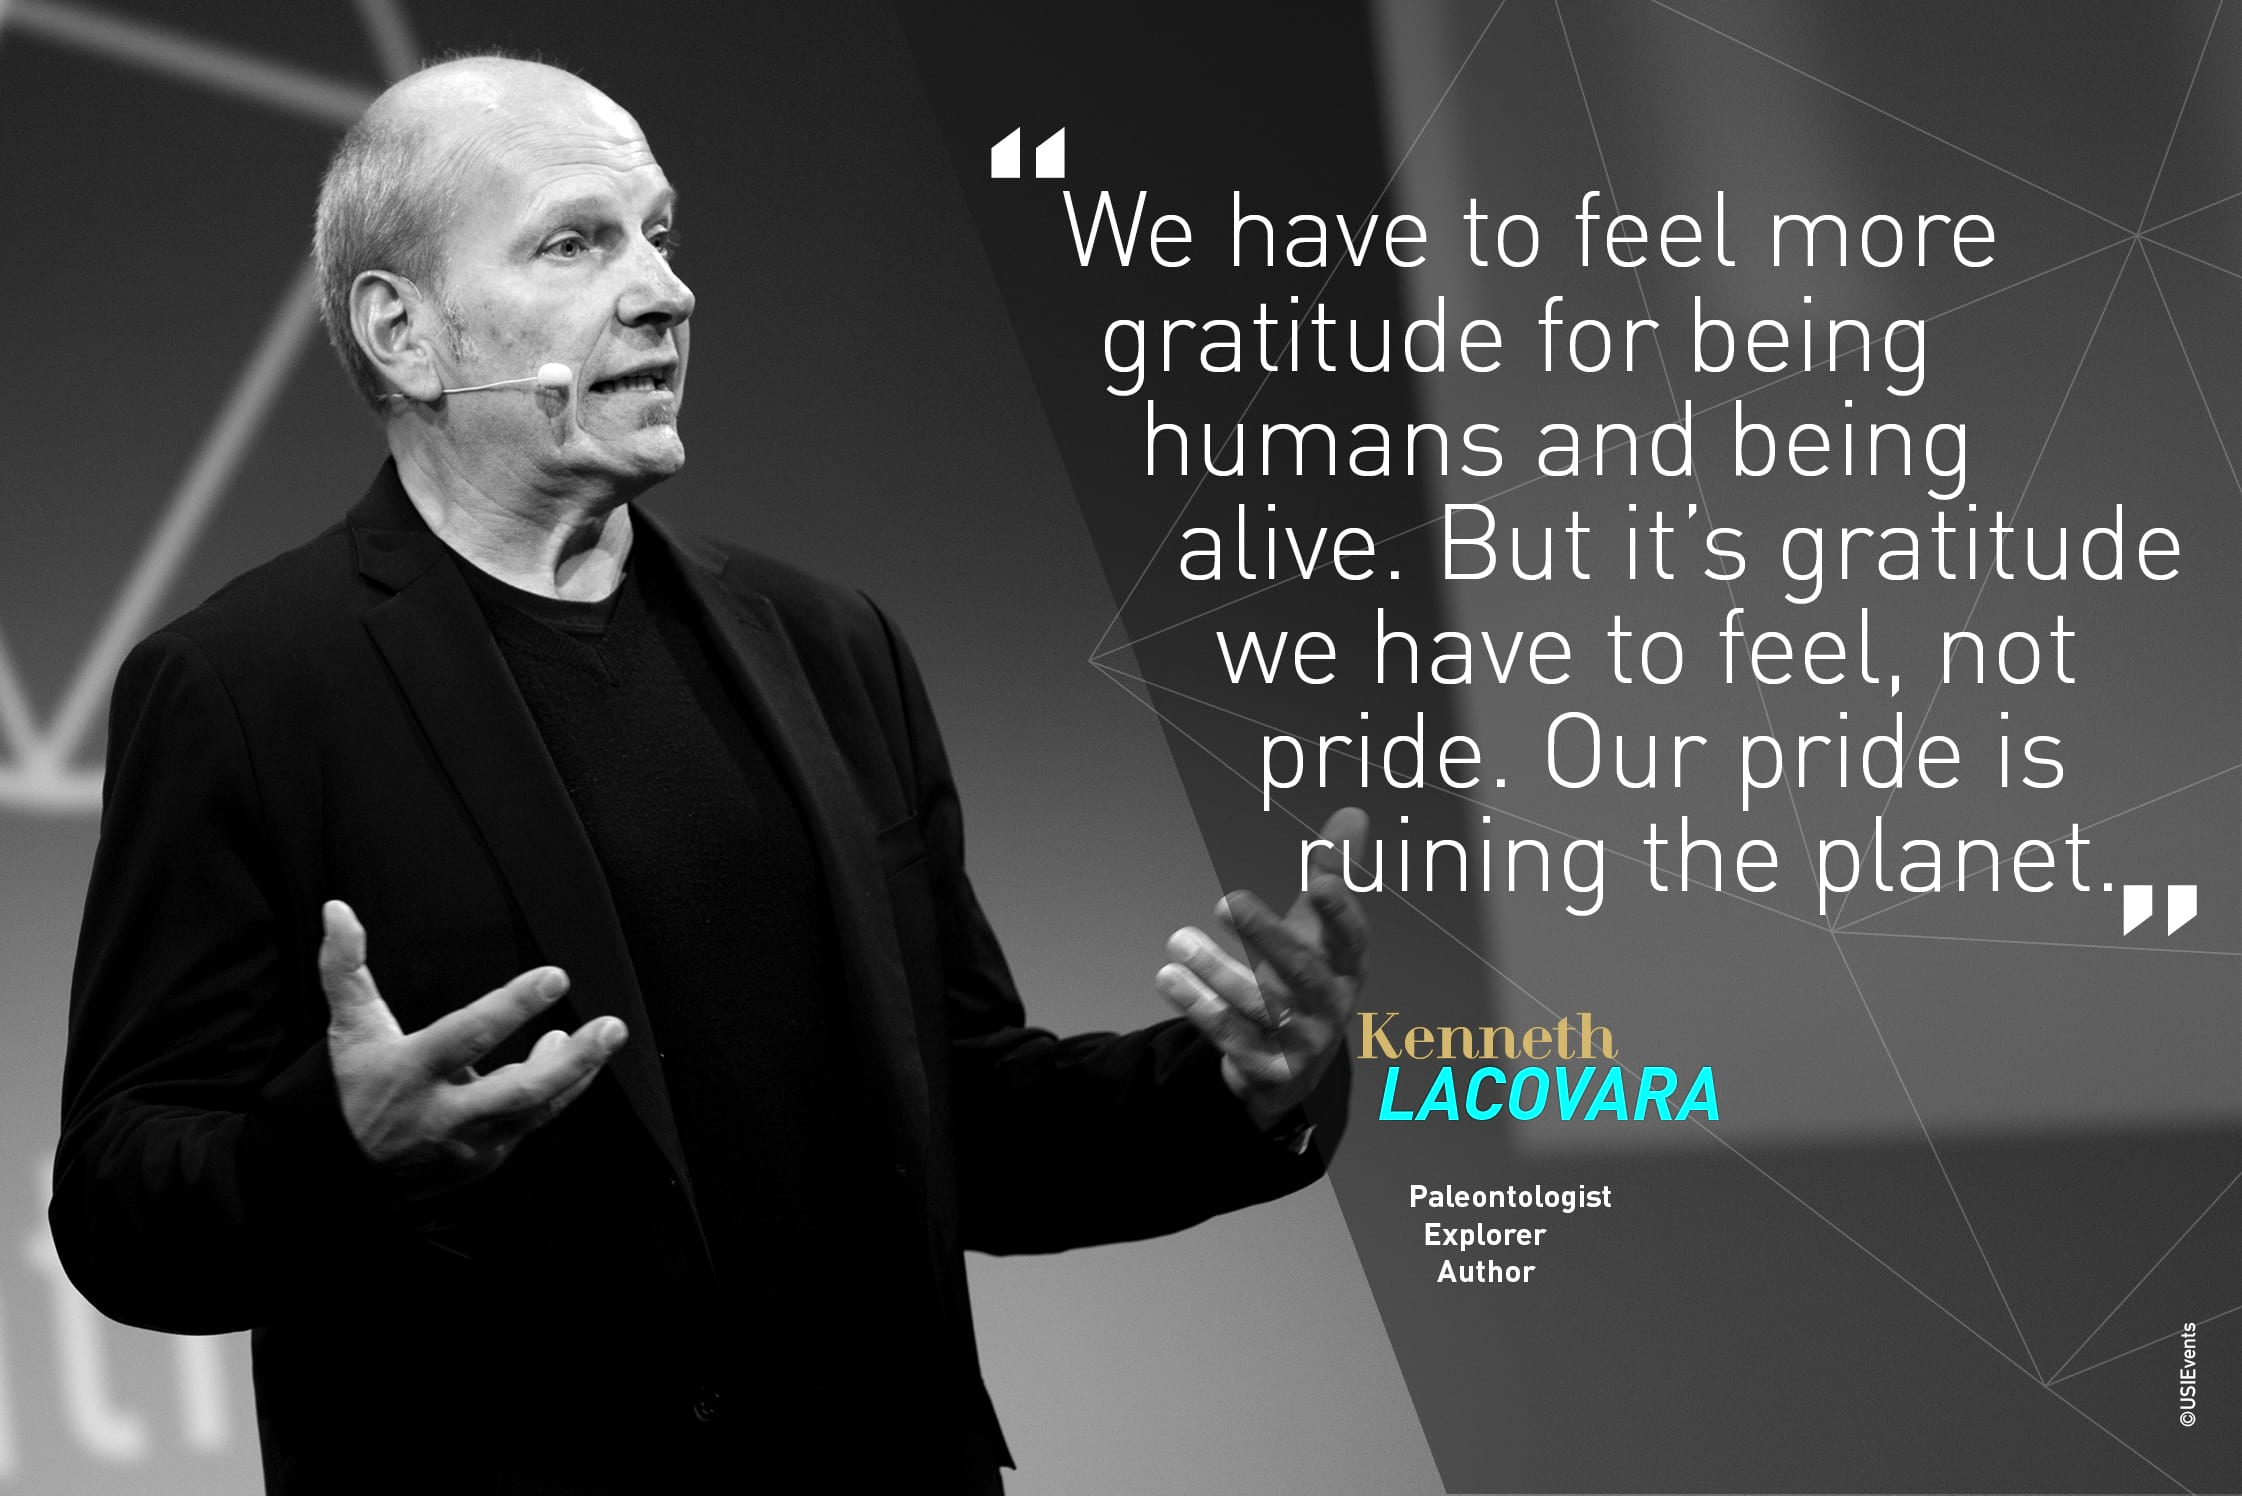 Citation du spécialiste des dinosaures Kenneth Lacovara à USI 2018 : We have to feel gratitude being human and being alive. Not pride. Our pride is ruining the planet""